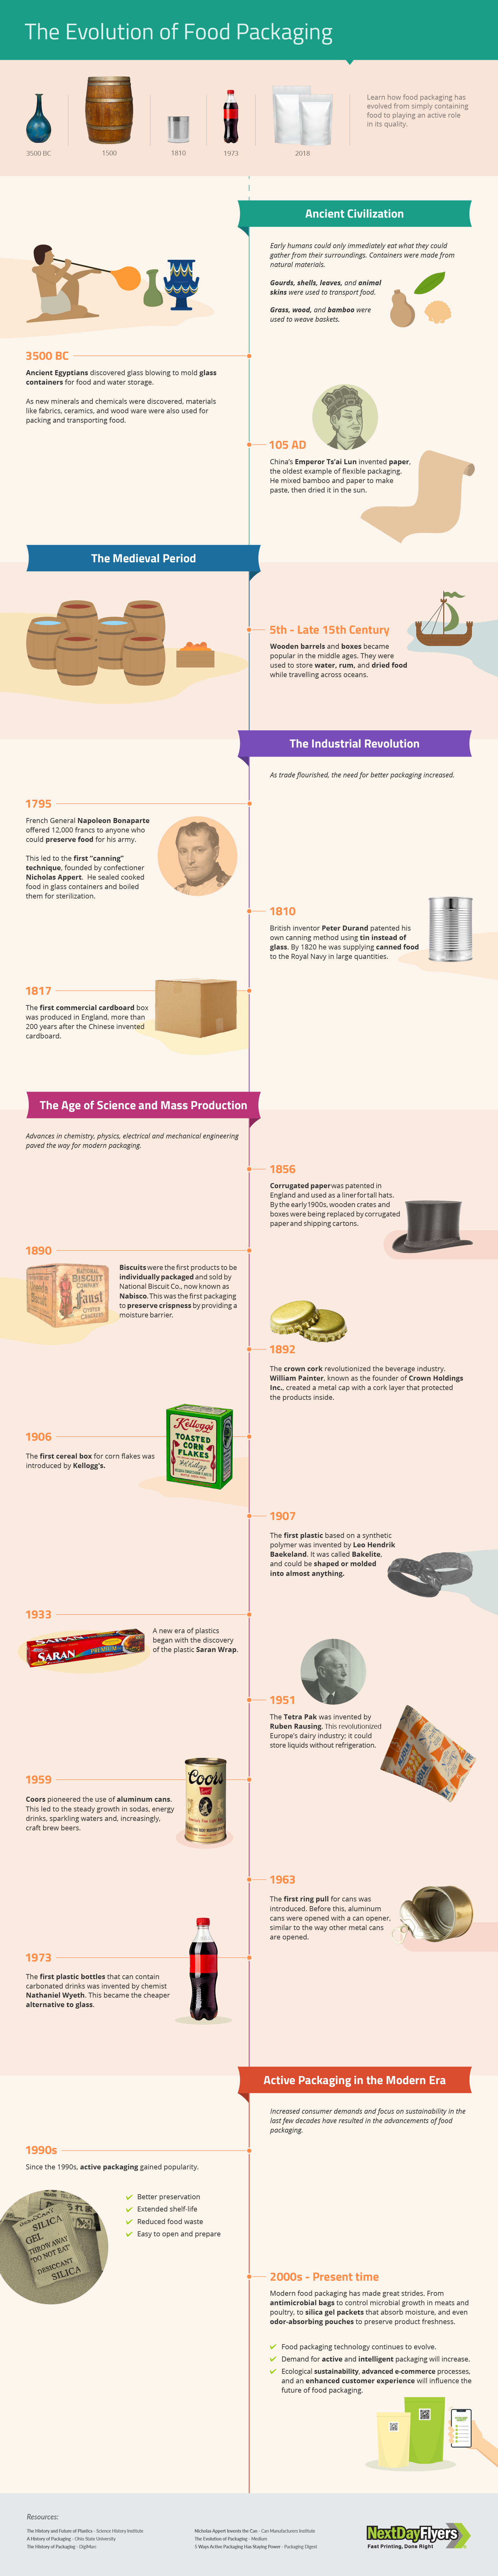 the-evolution-of-food-packaging